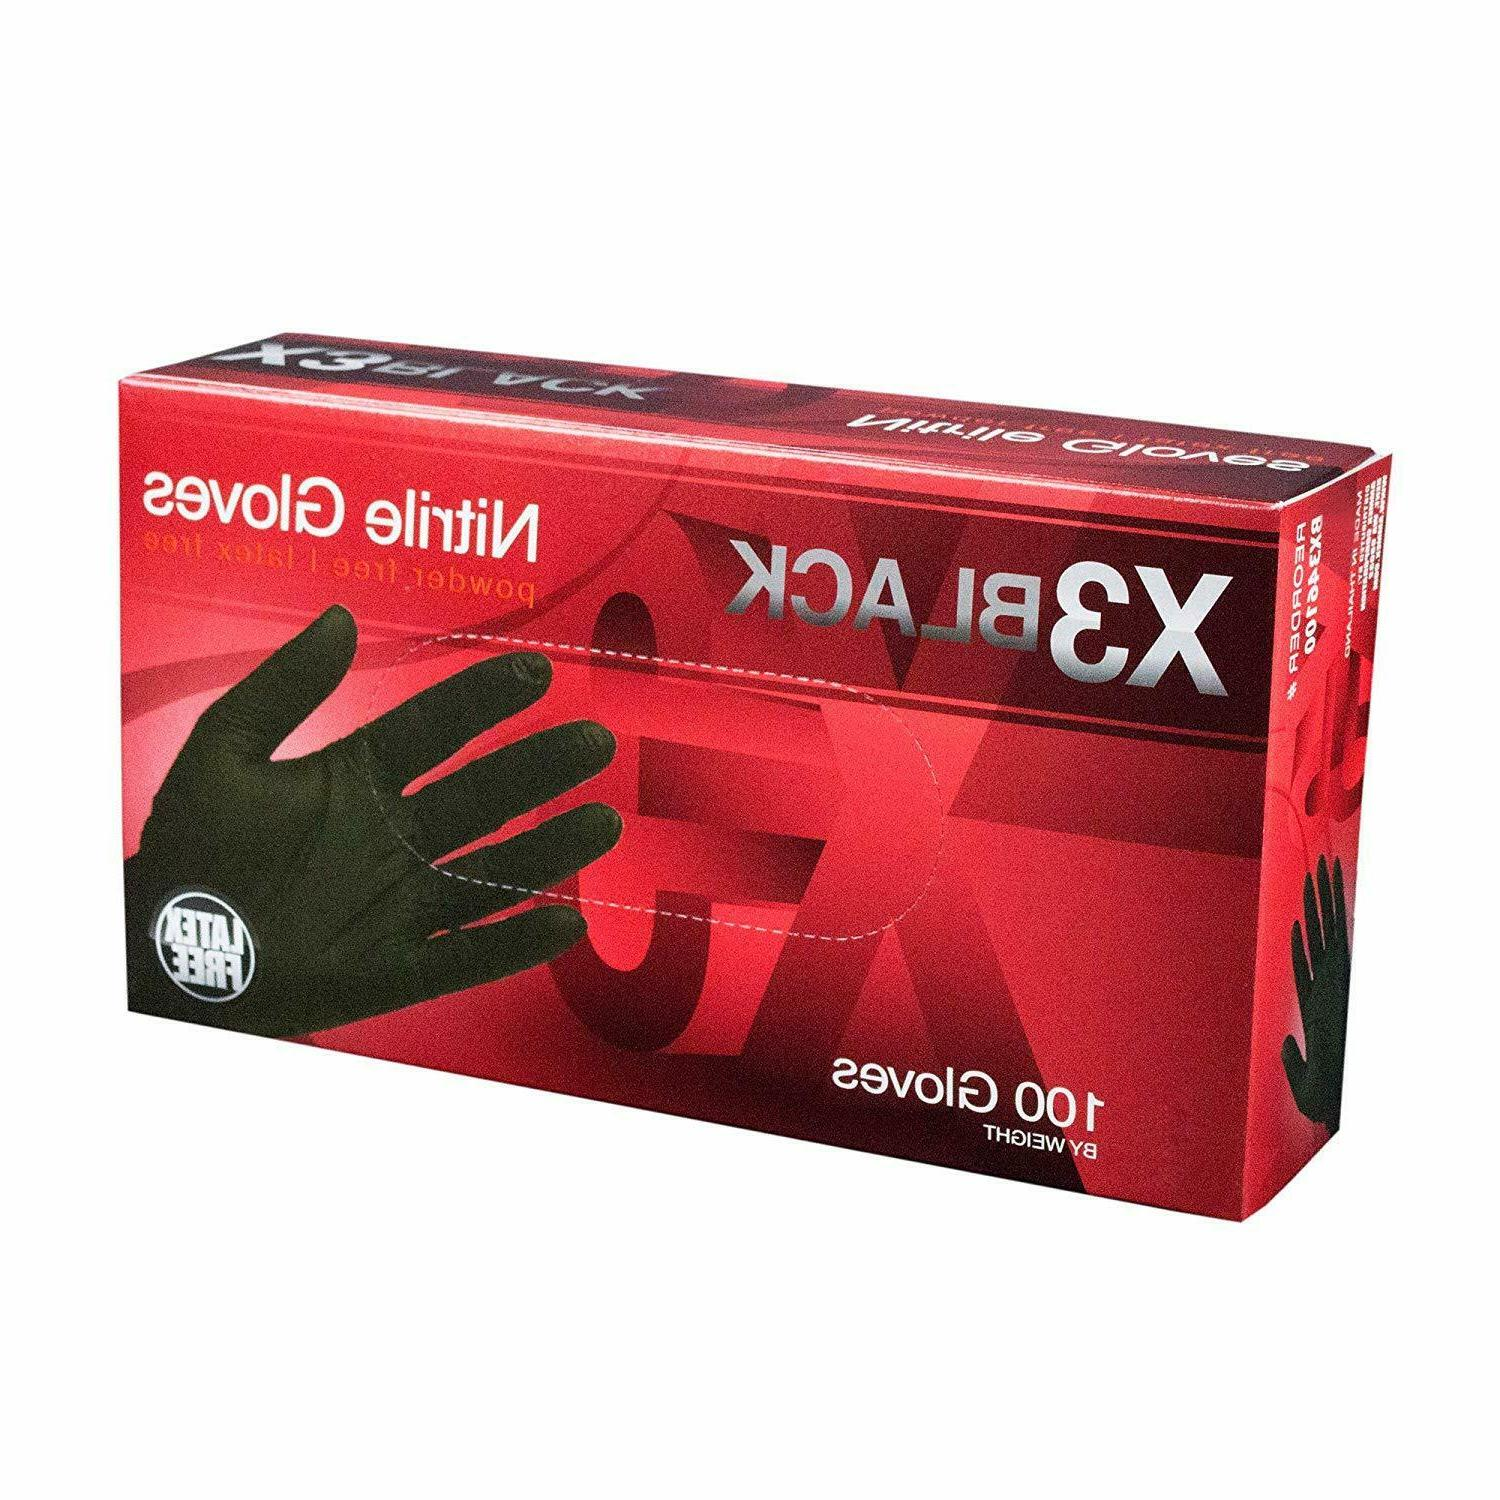 NITRILE DISPOSABLE INDUSTRIAL GLOVES BOX 3 MIL BLACK FOOD SA